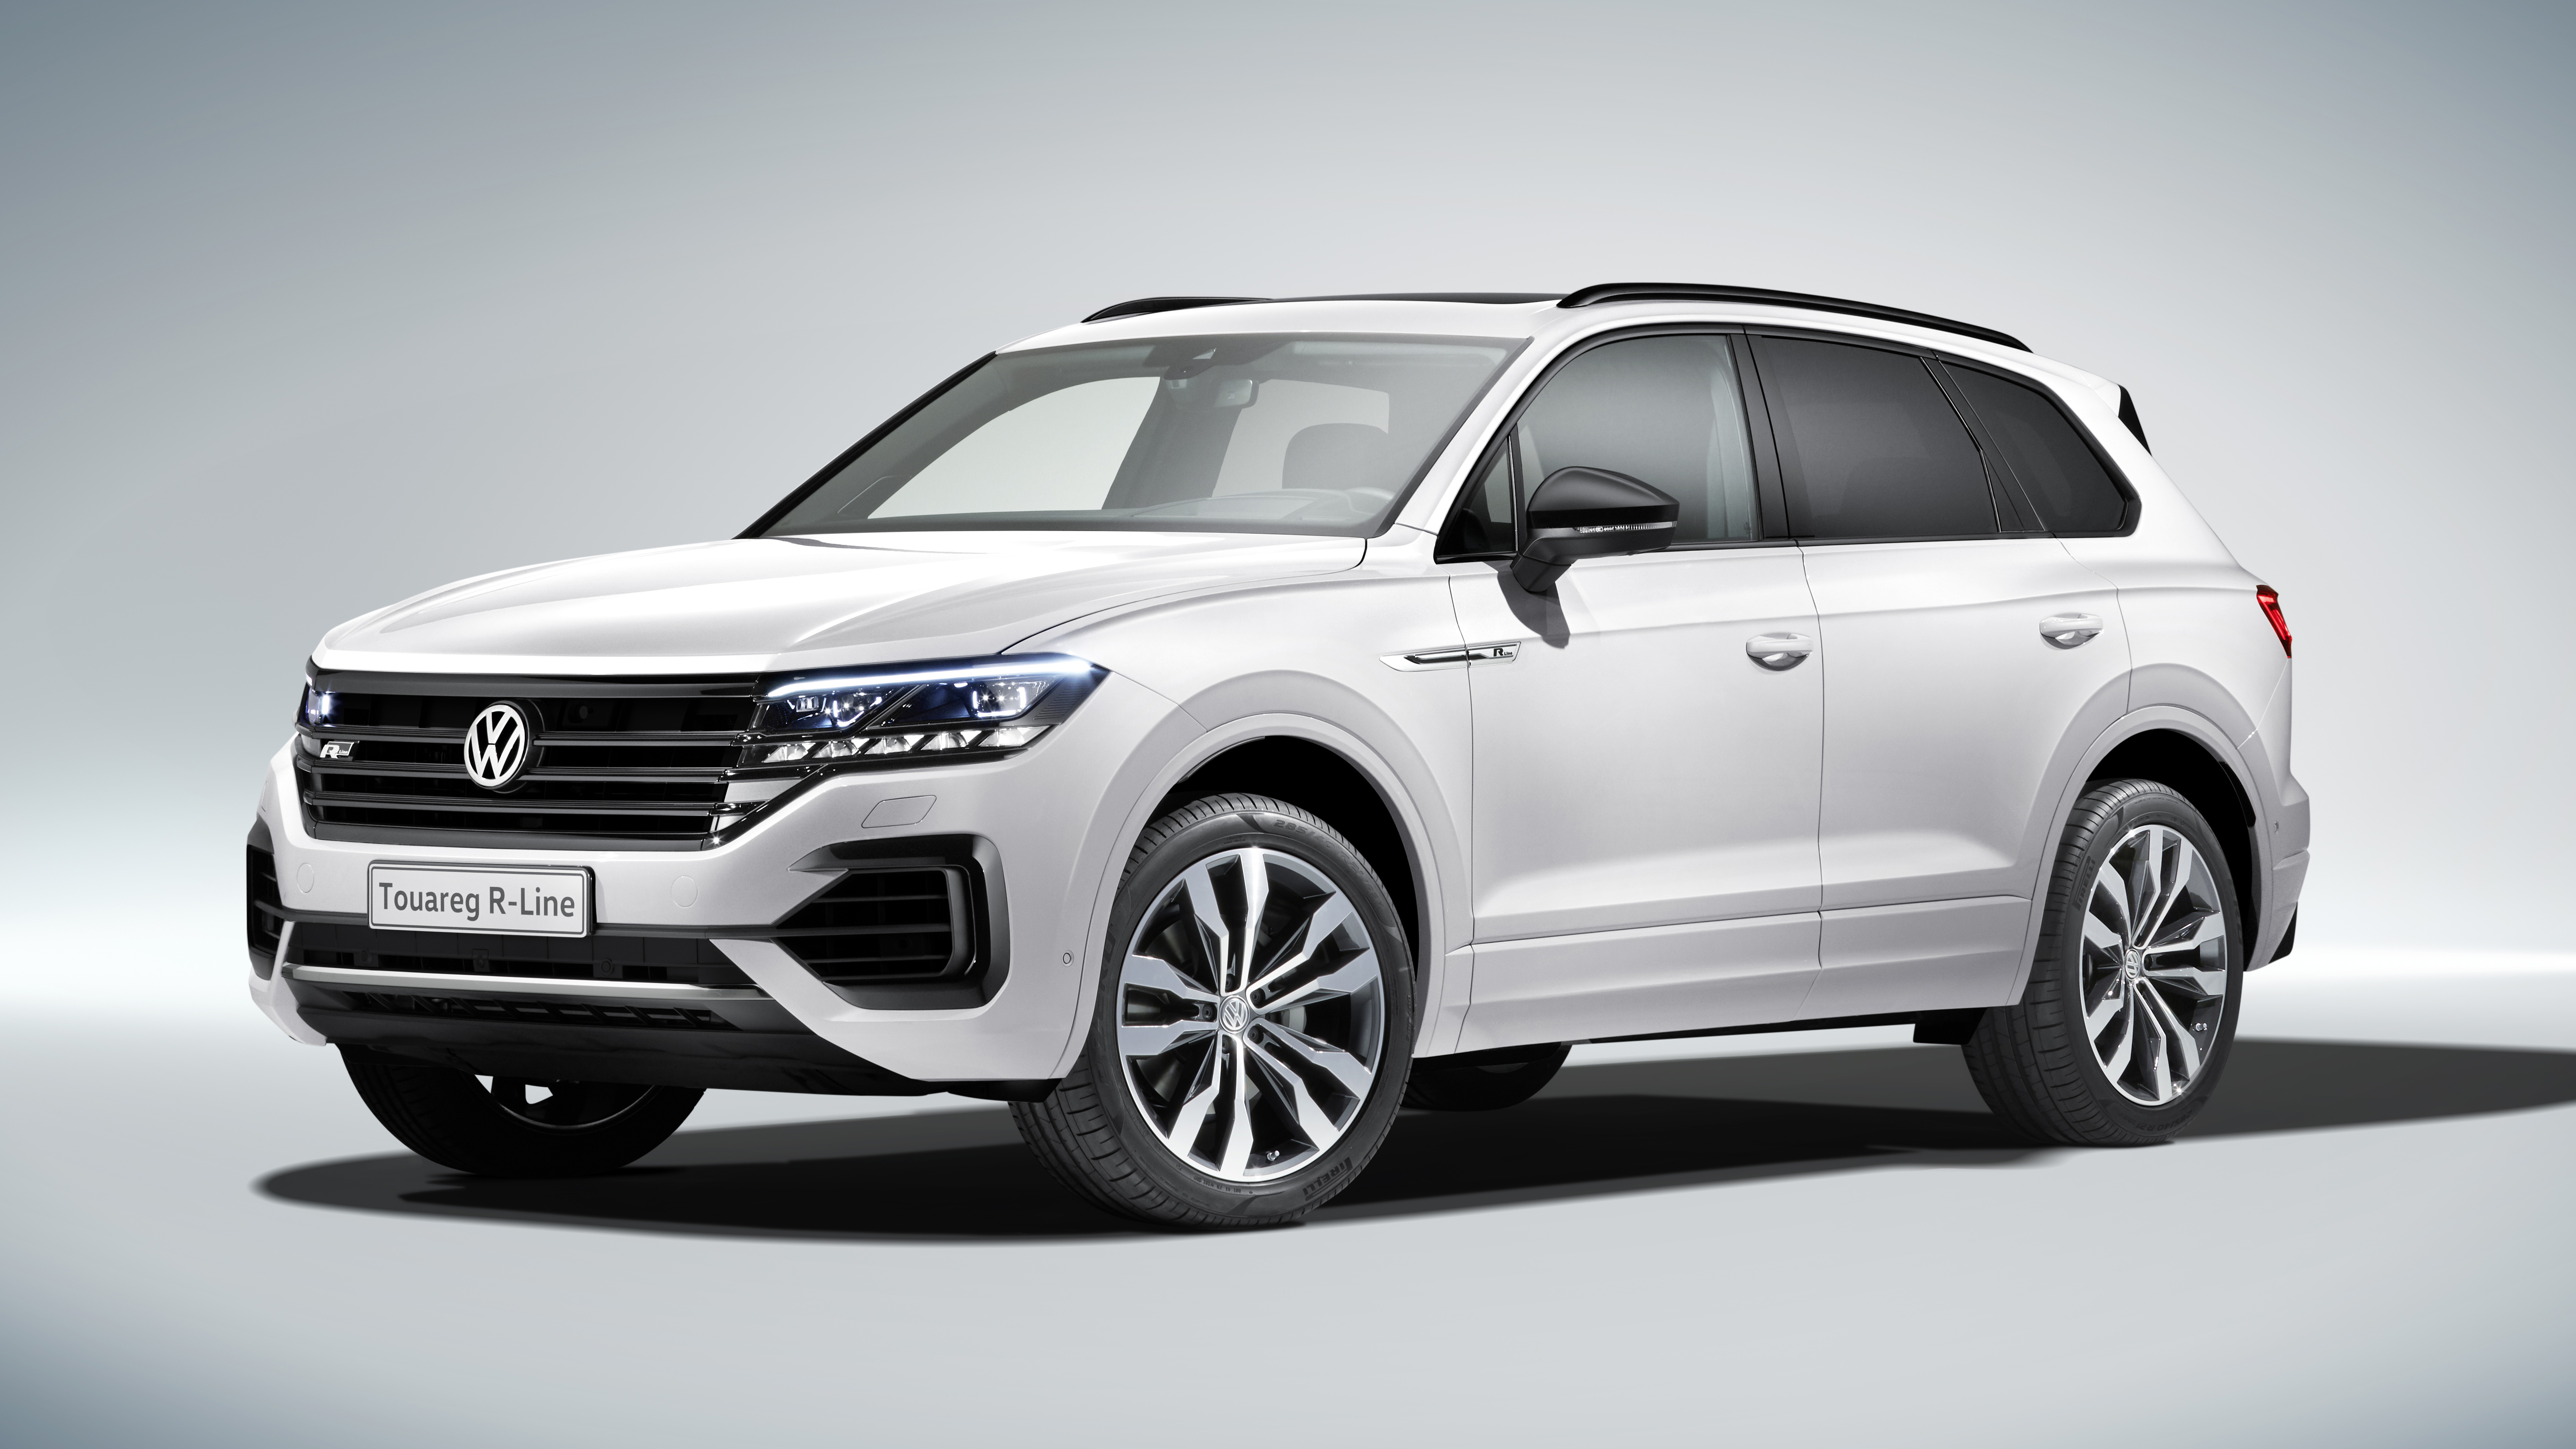 It S The New Volkswagen Touareg Top Gear